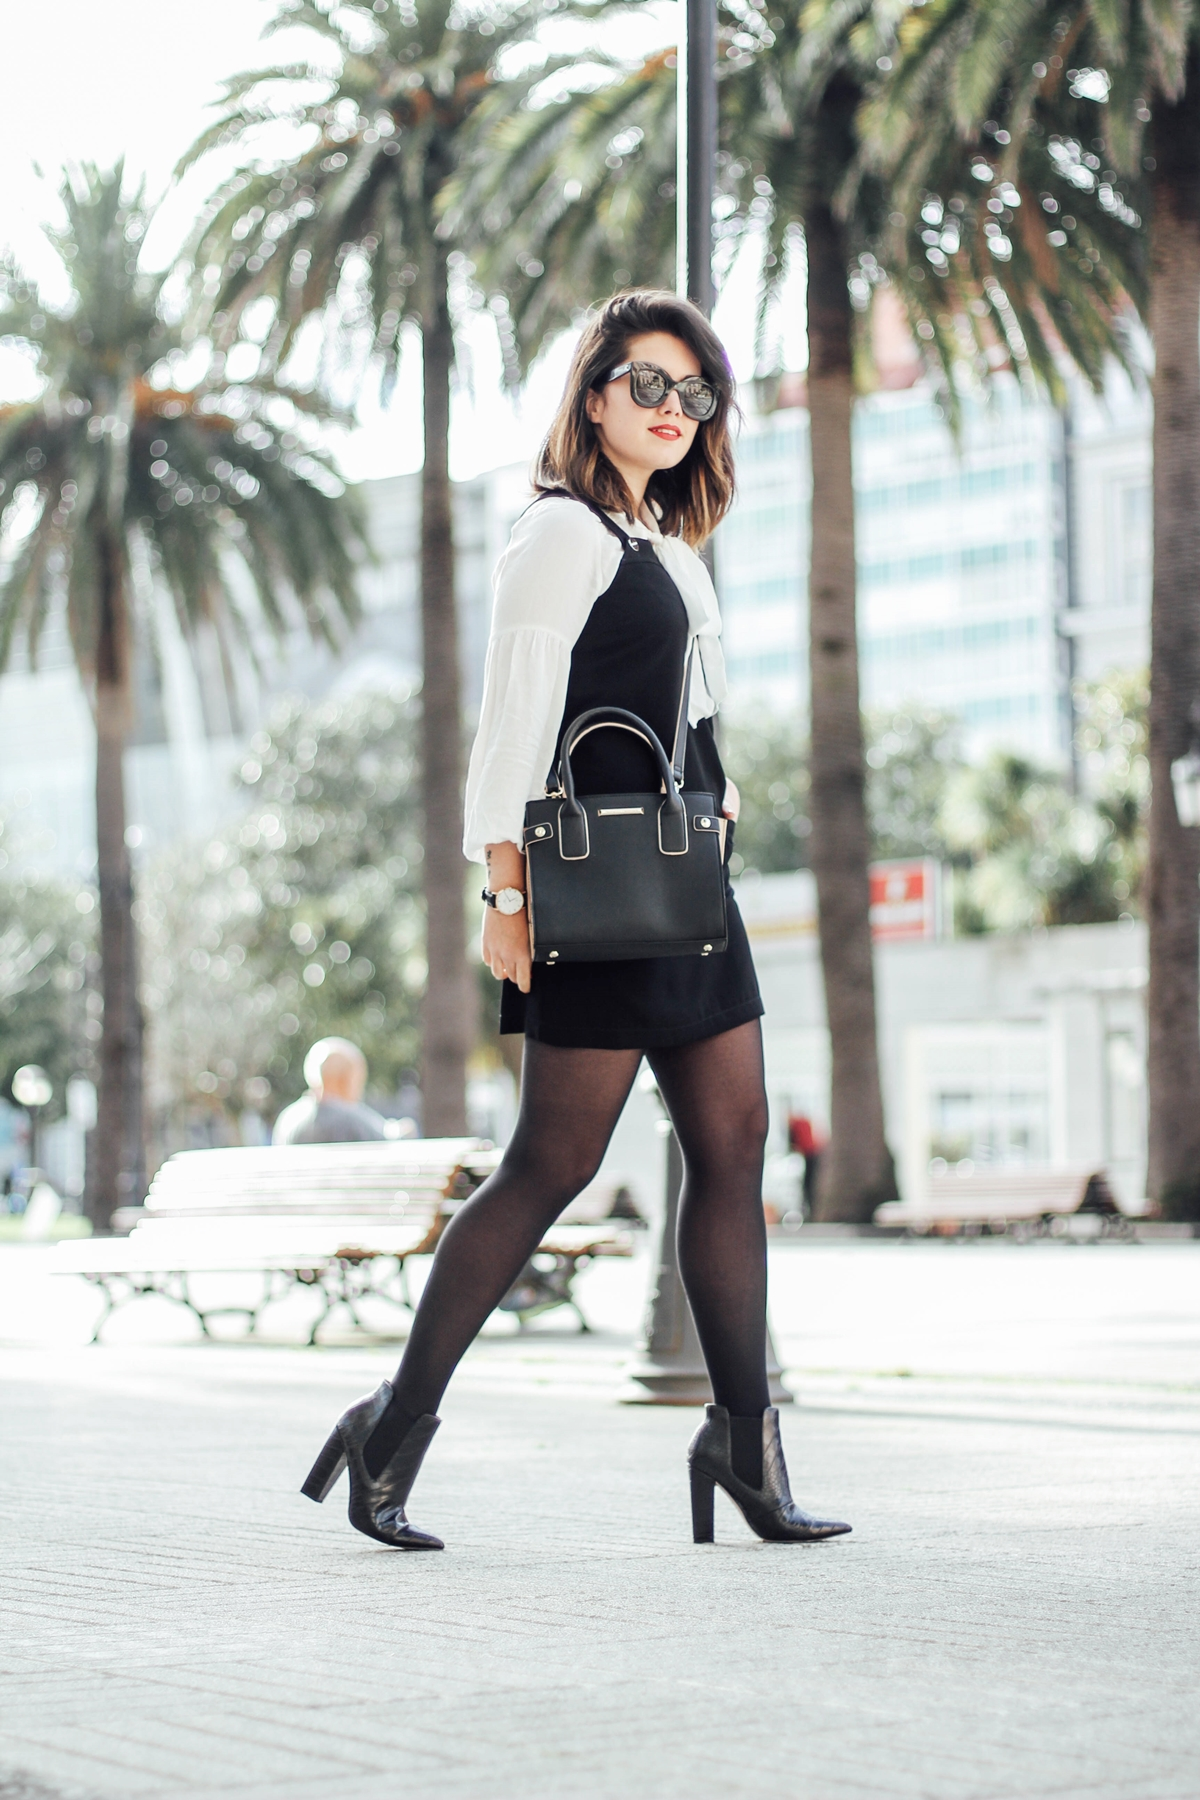 styleheroes-dorothy-perkins-pinafore-dress-cocodrile-booties-baby-marta-celine-sunglasses-streetstyle